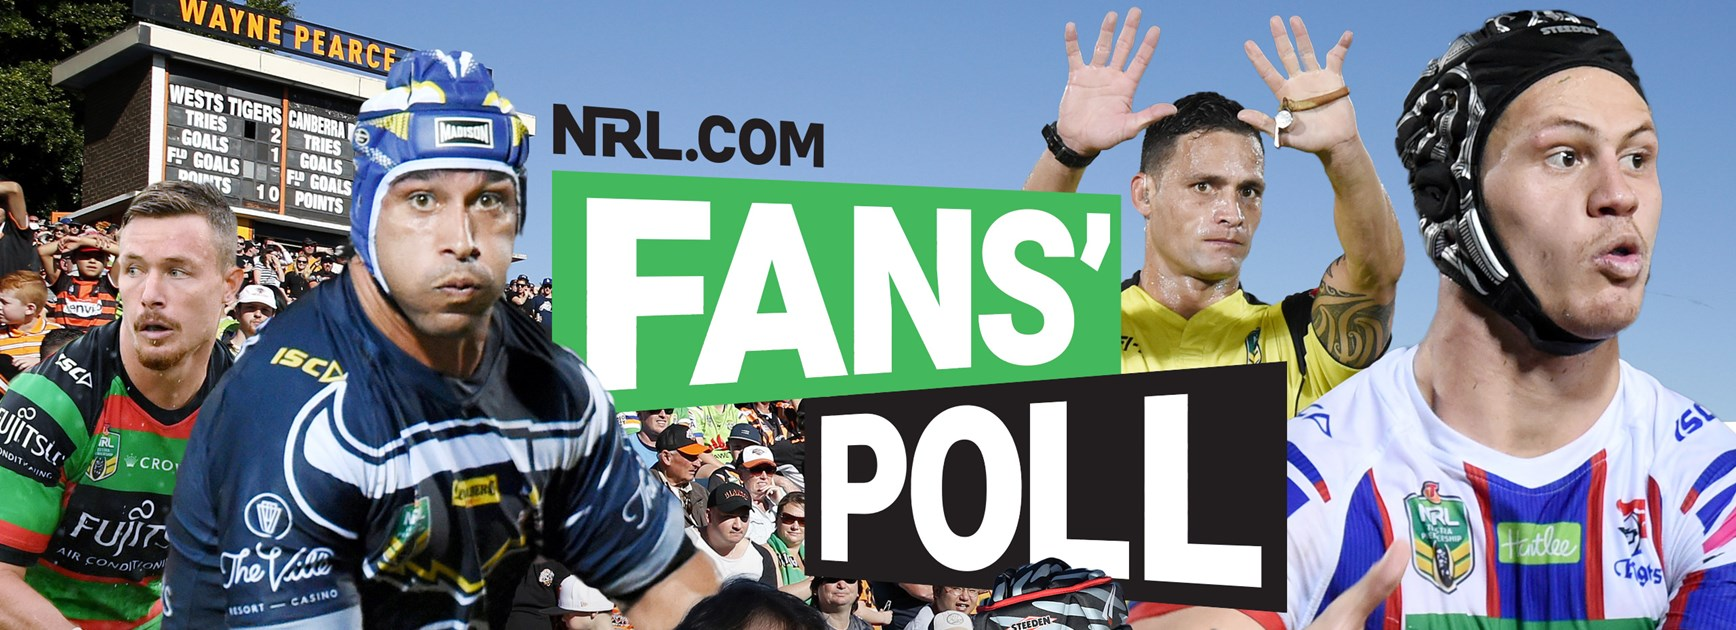 NRL Official Fans Poll: Have your say